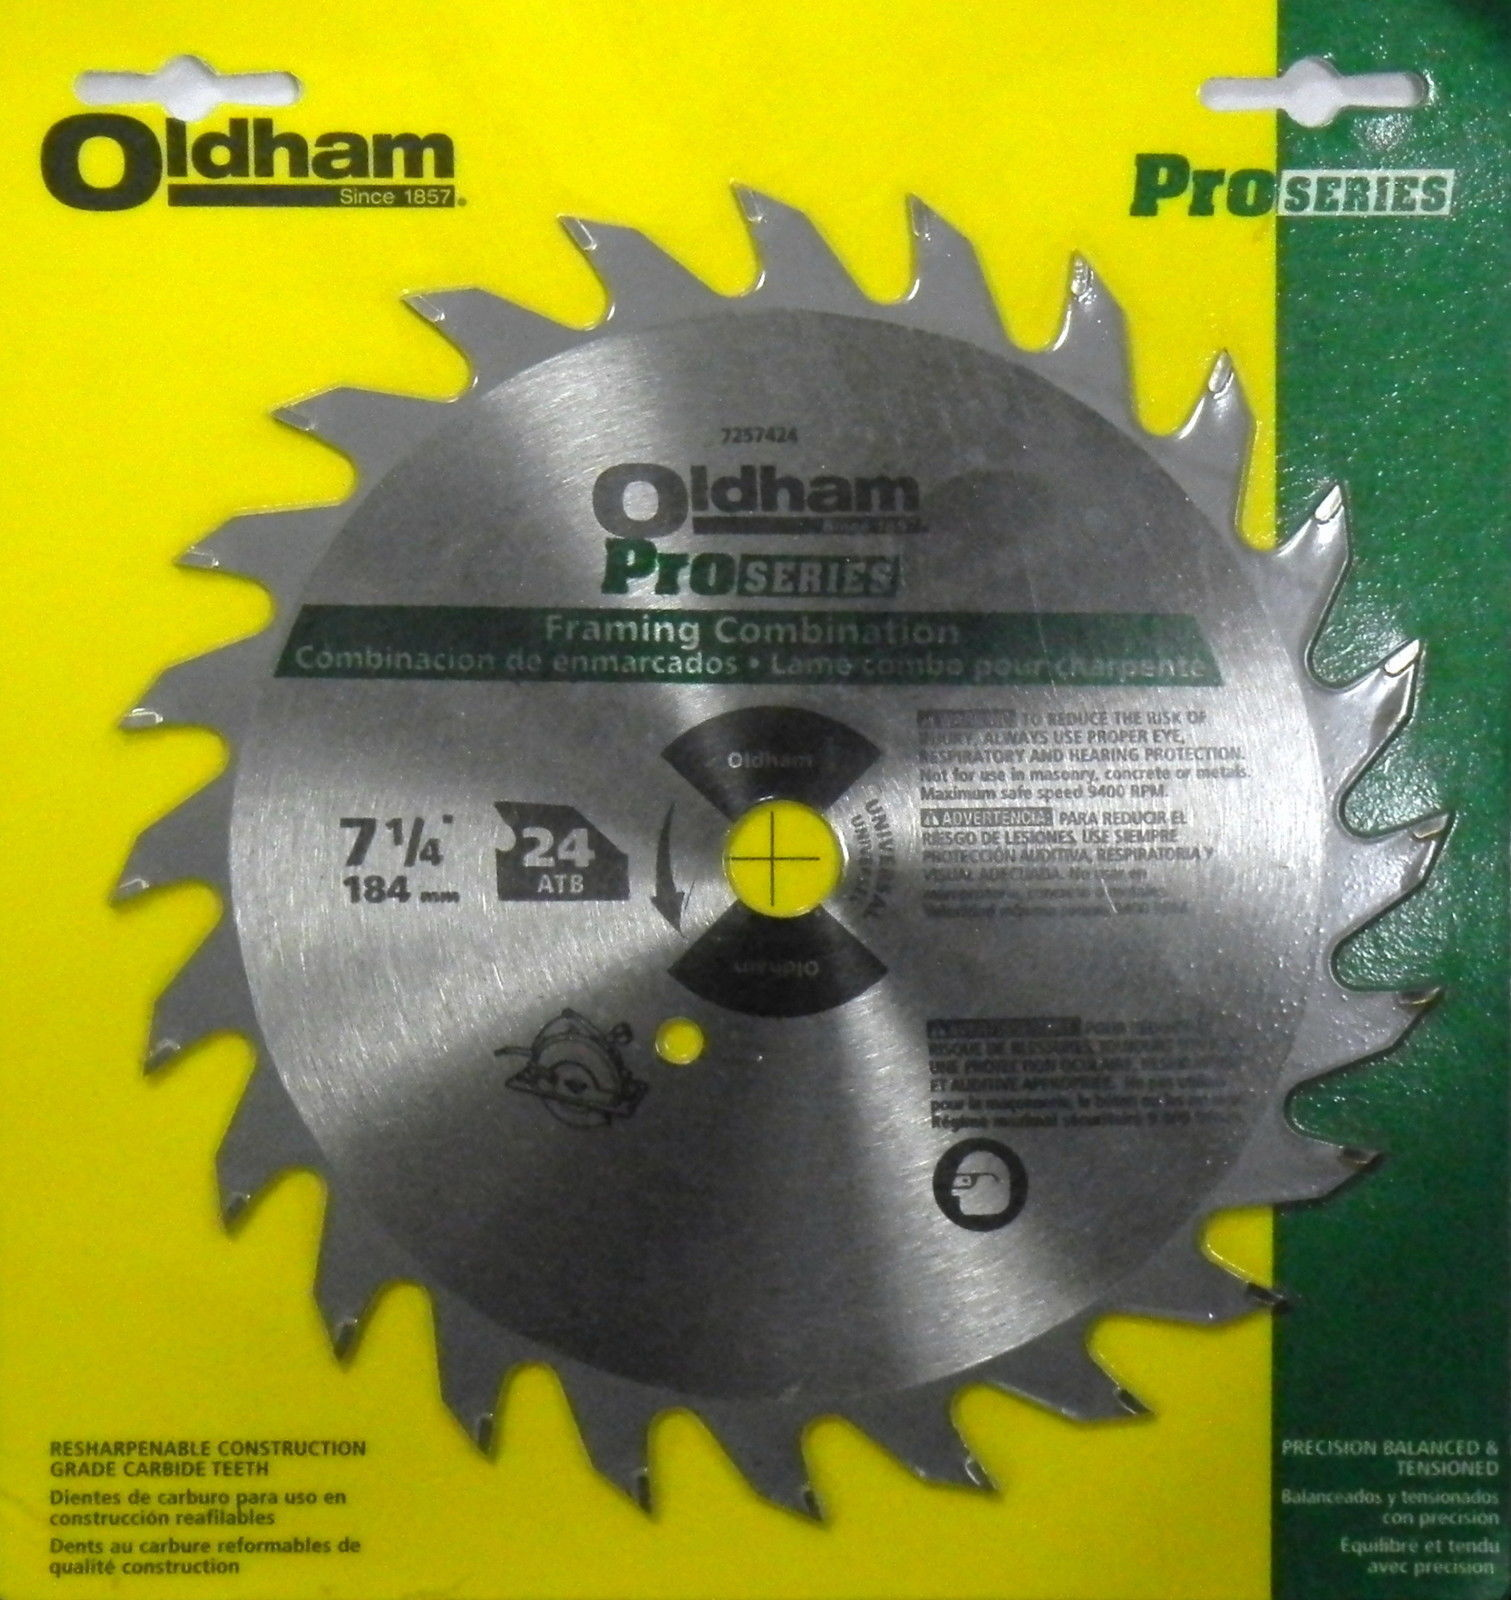 "Primary image for Oldham 7257424 Pro Series 7-1/4"" x 24 ATB Carbide Saw Blade USA"